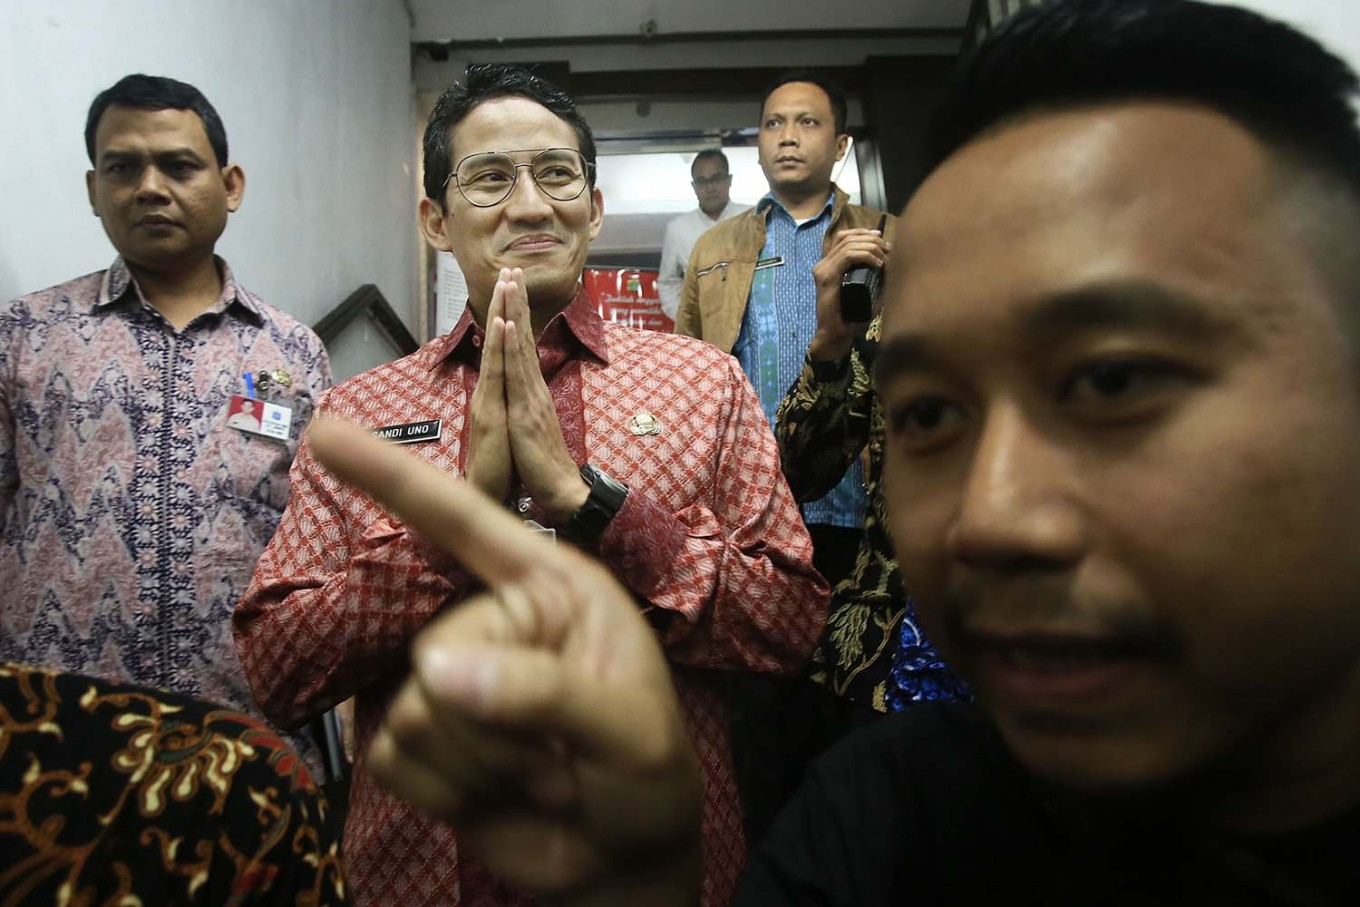 Sandiaga appointed head of Prabowo's vice presidential selection team